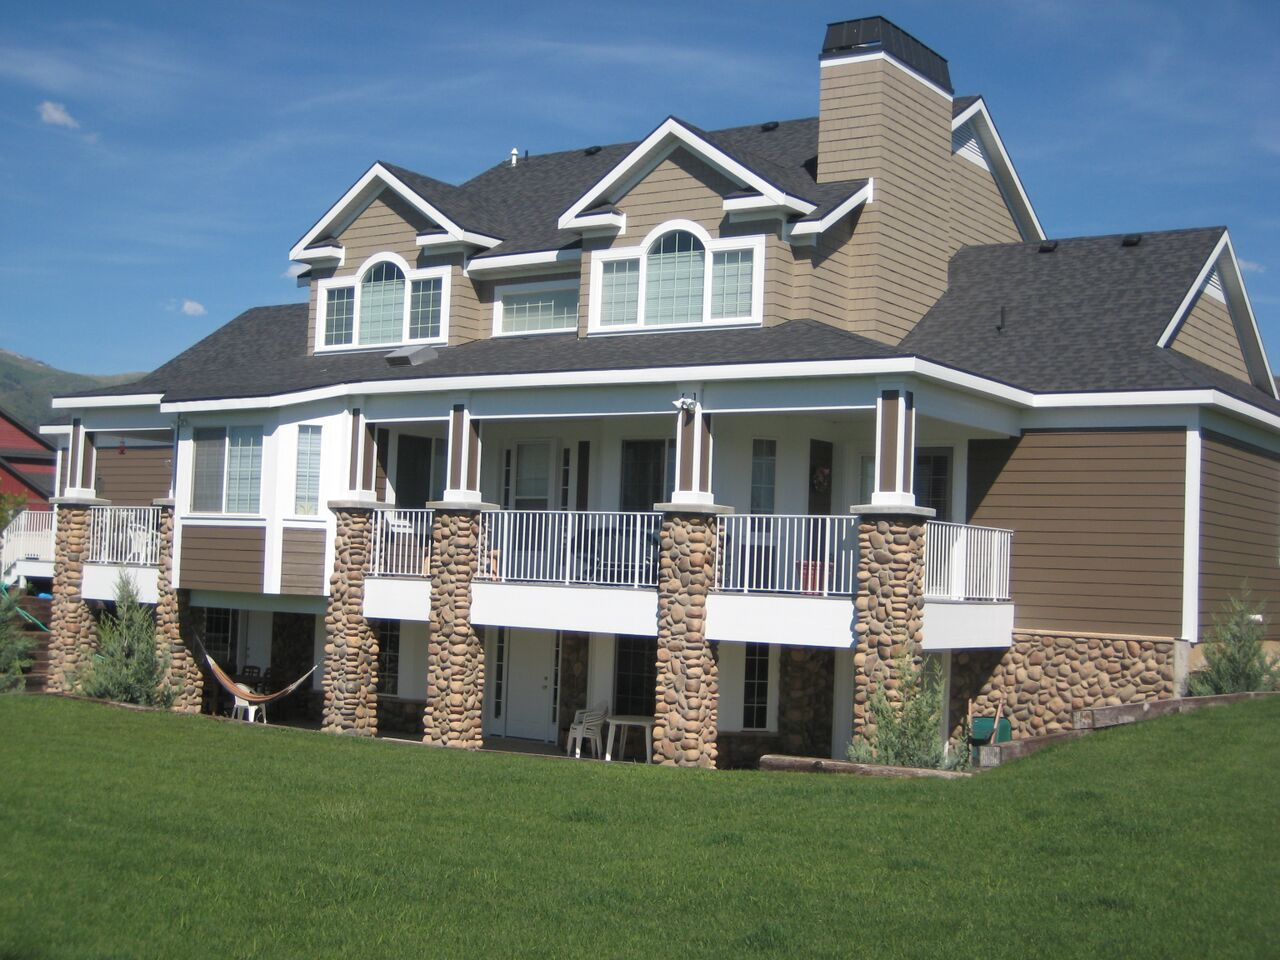 House exterior image for Painters